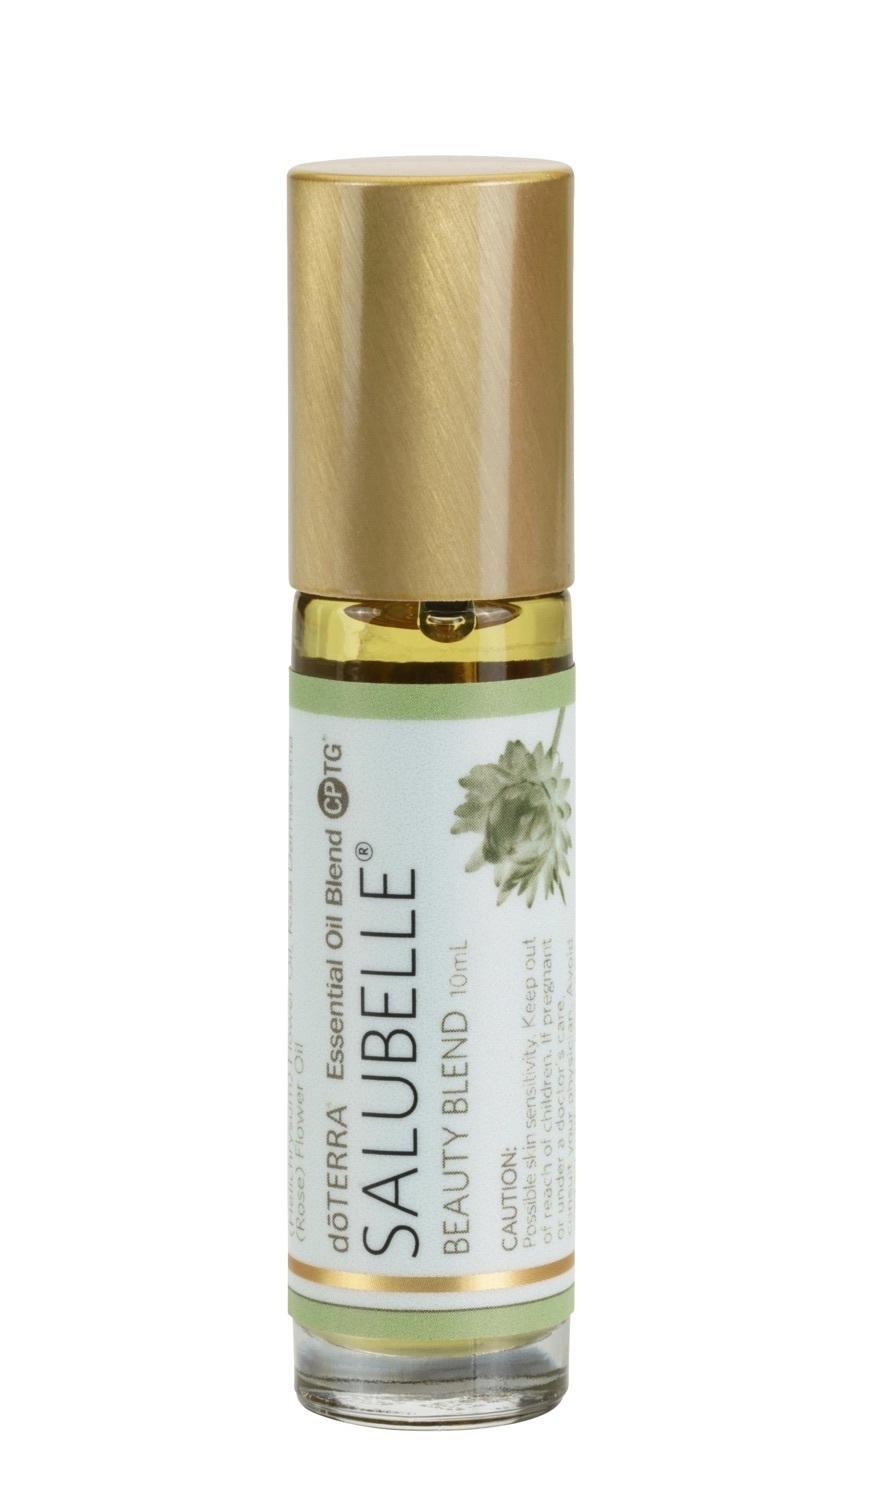 Salubelle Essential Oil Blend (10ml) Roll on - doTERRA 1105